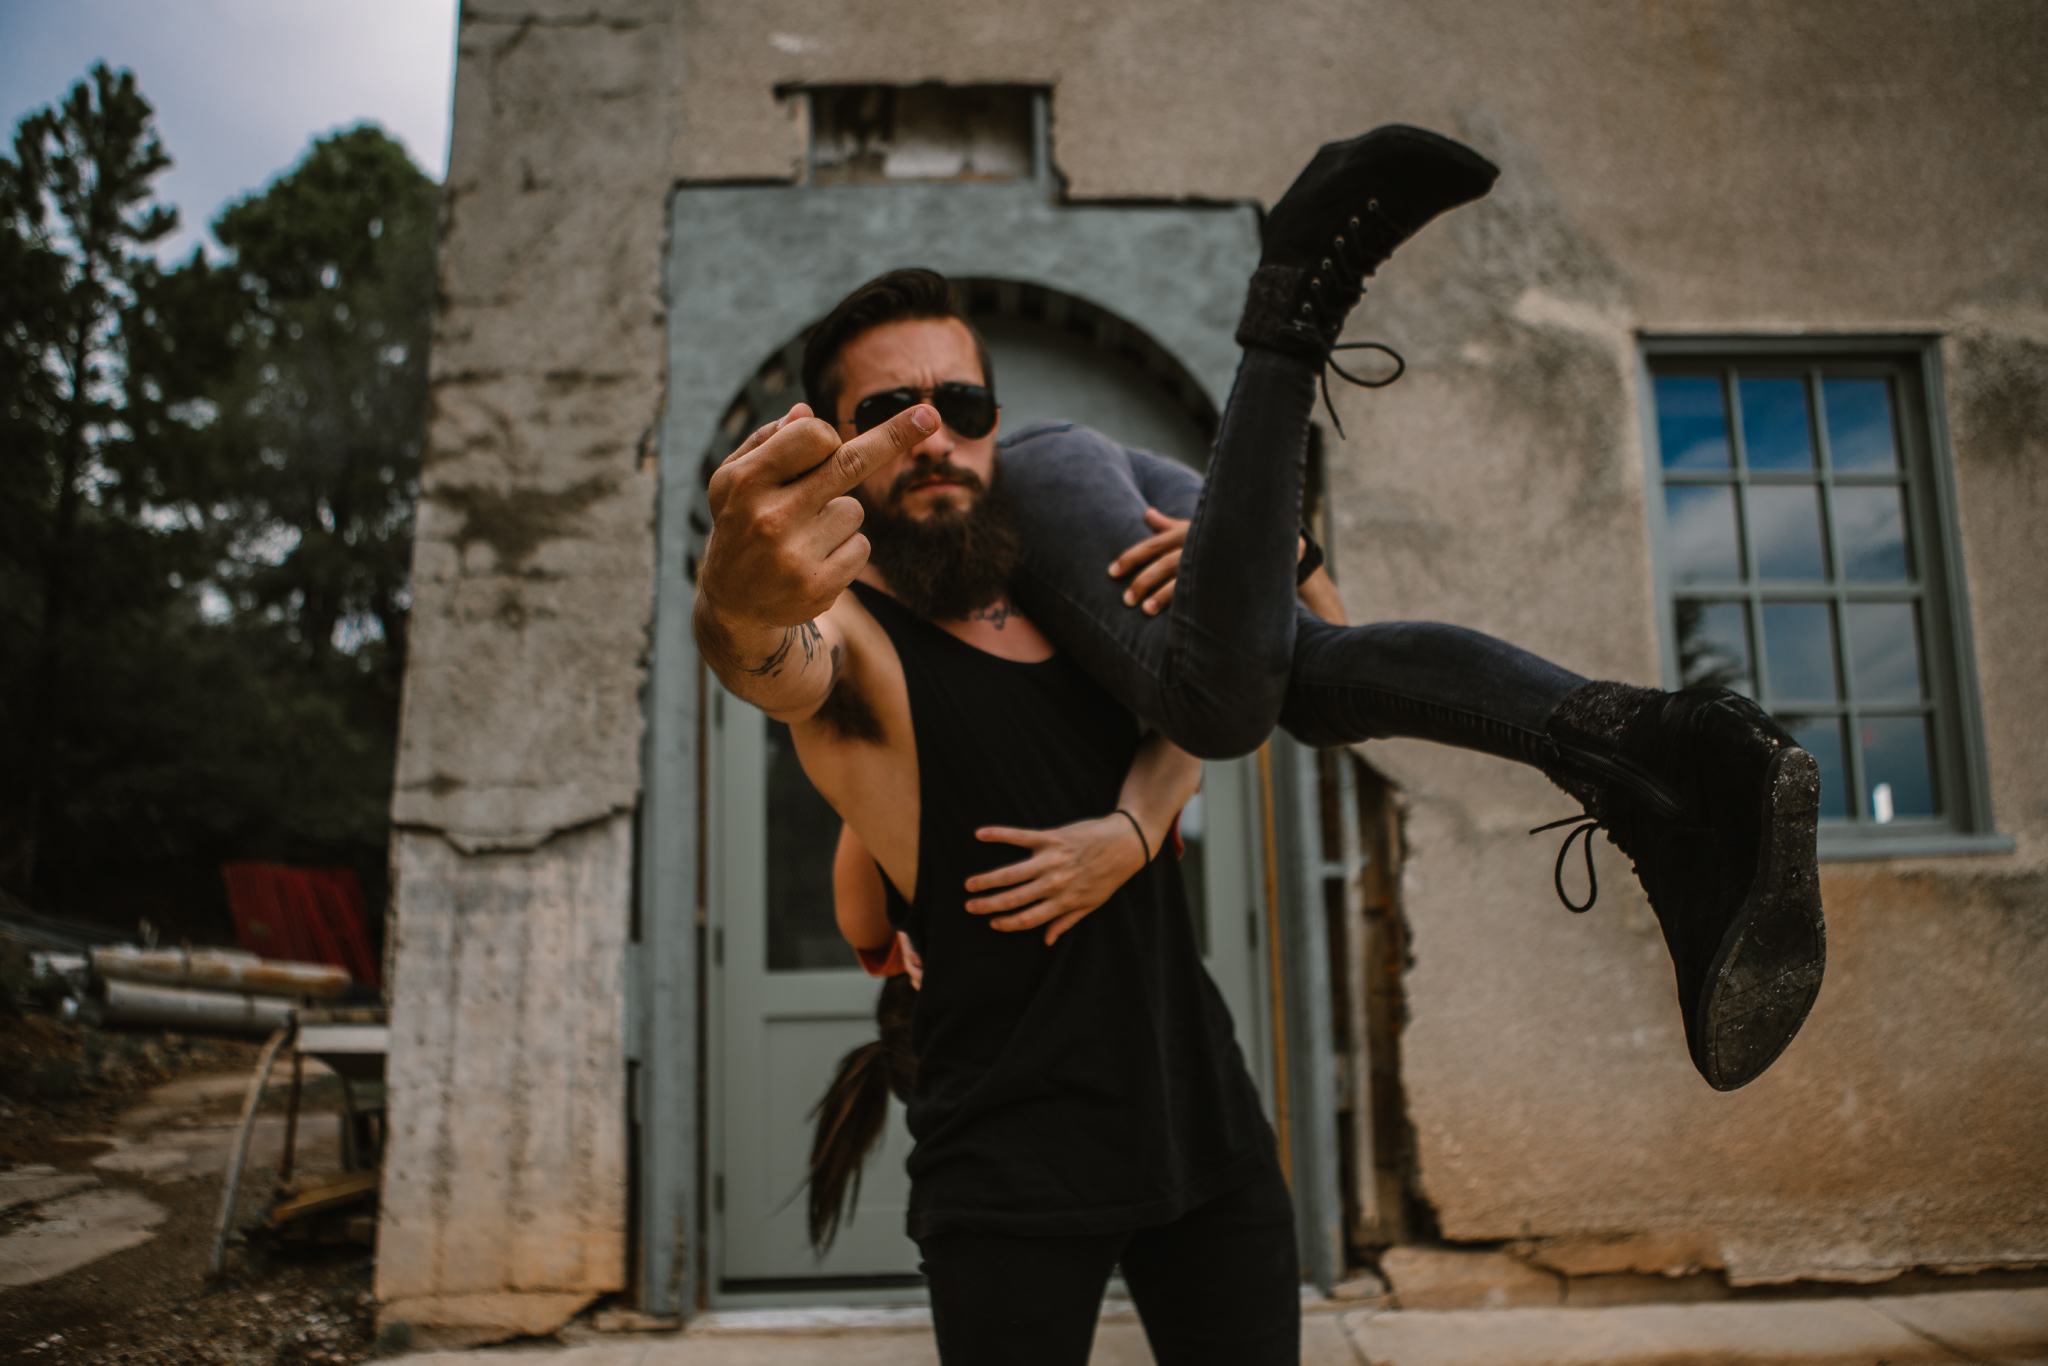 san diego wedding   photographer | bearded man in shades flipping off camera while carrying woman